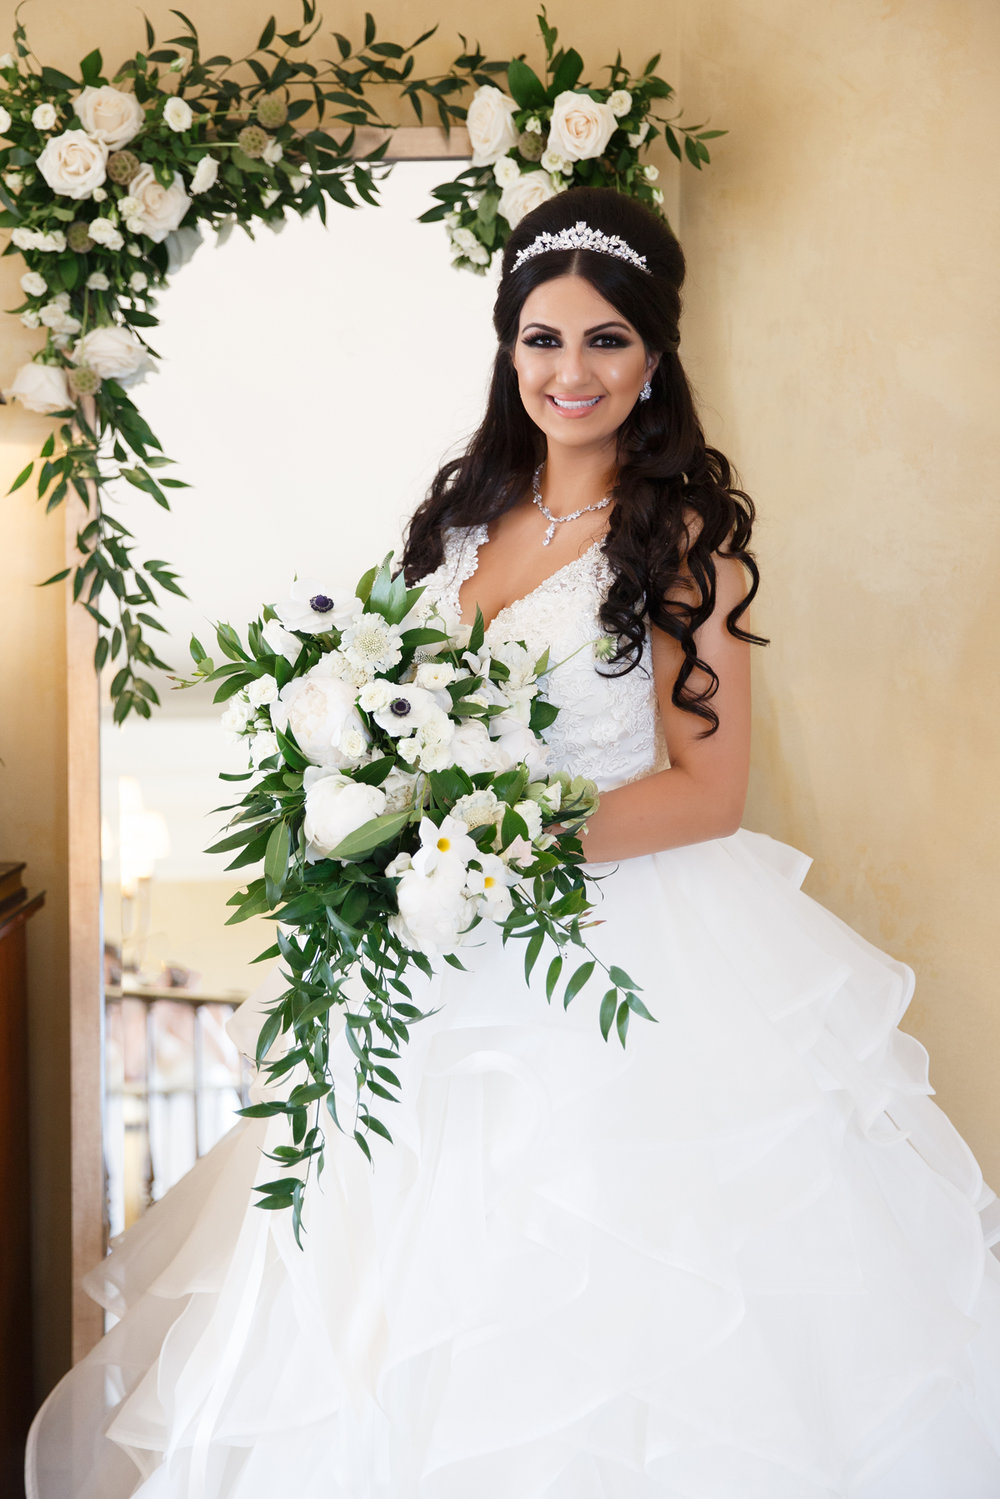 Elegant Pasadena Wedding to Make You Swoon stunning bride with beautiful bouquet.jpg